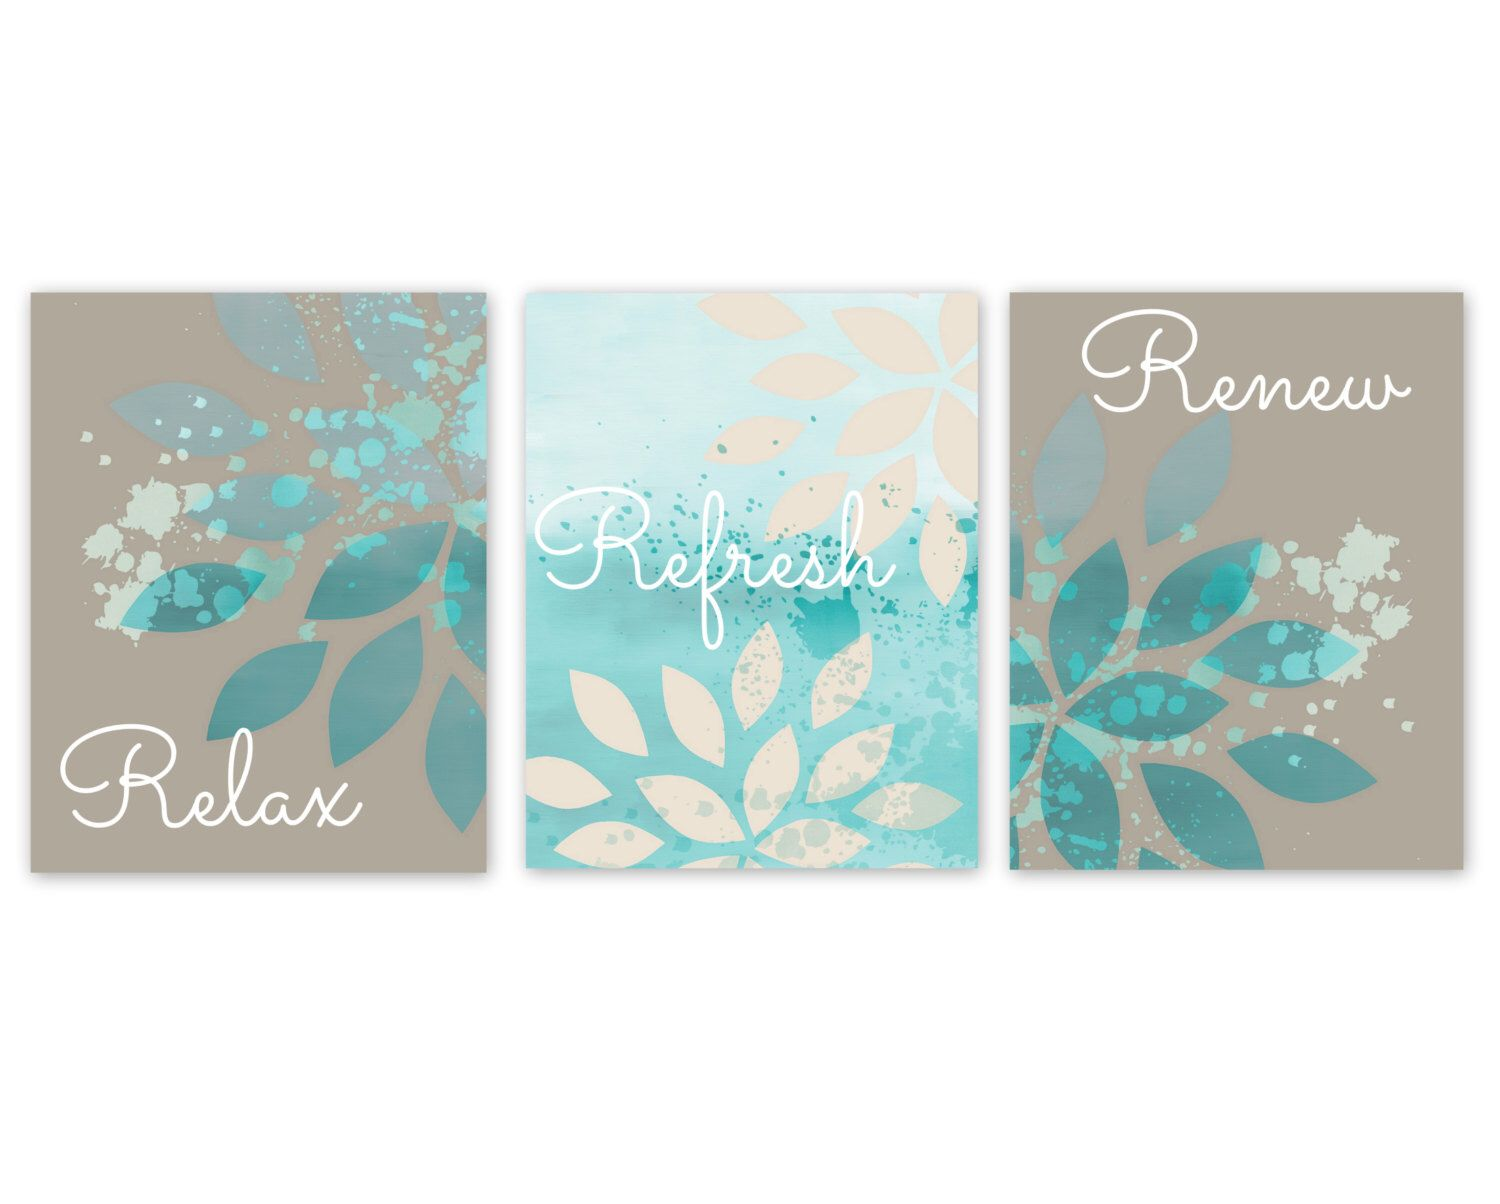 bathroom wall decor taupe teal bathroom decor turquoise bathroom art bathroom wall art home decor 5x7 8x10 11x14 unframed